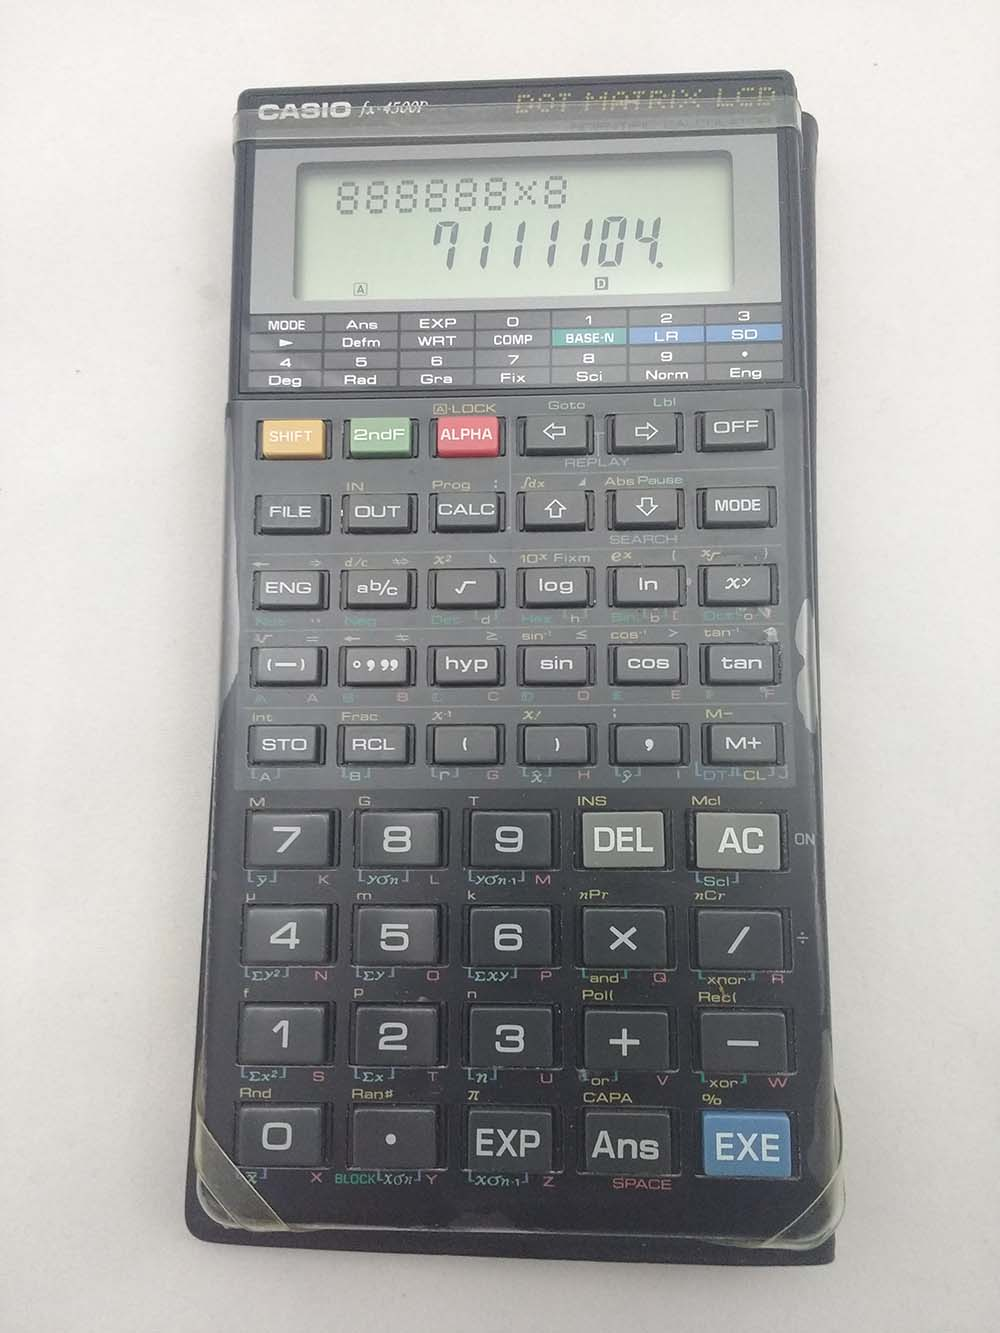 Casio calculator FX-4500Pa (nº268)